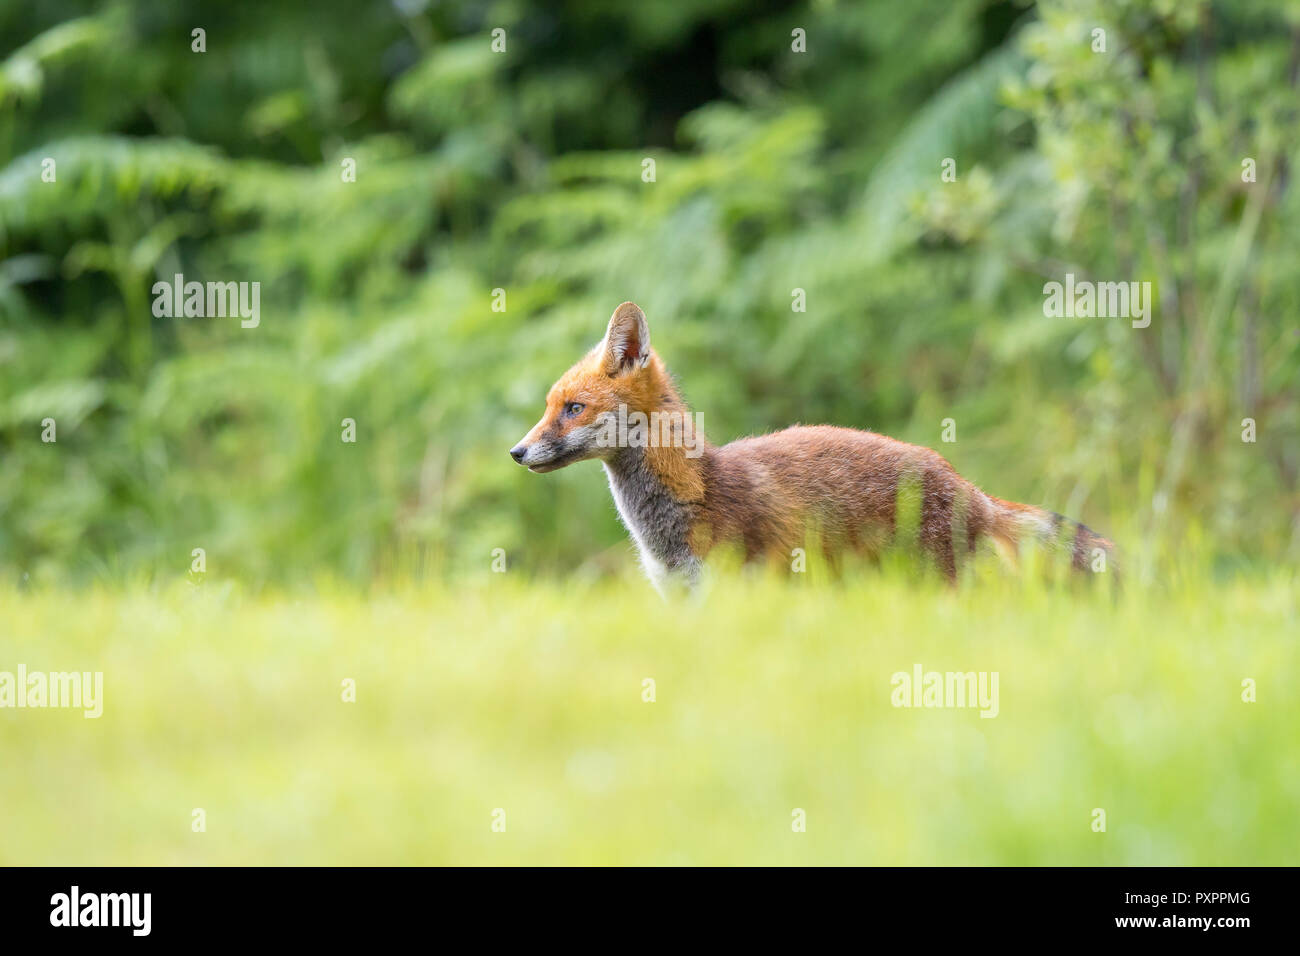 Detailed landscape close up: young red fox in the wild, standing alone in long grass, against woodland background. Side view of body, head facing left. - Stock Image